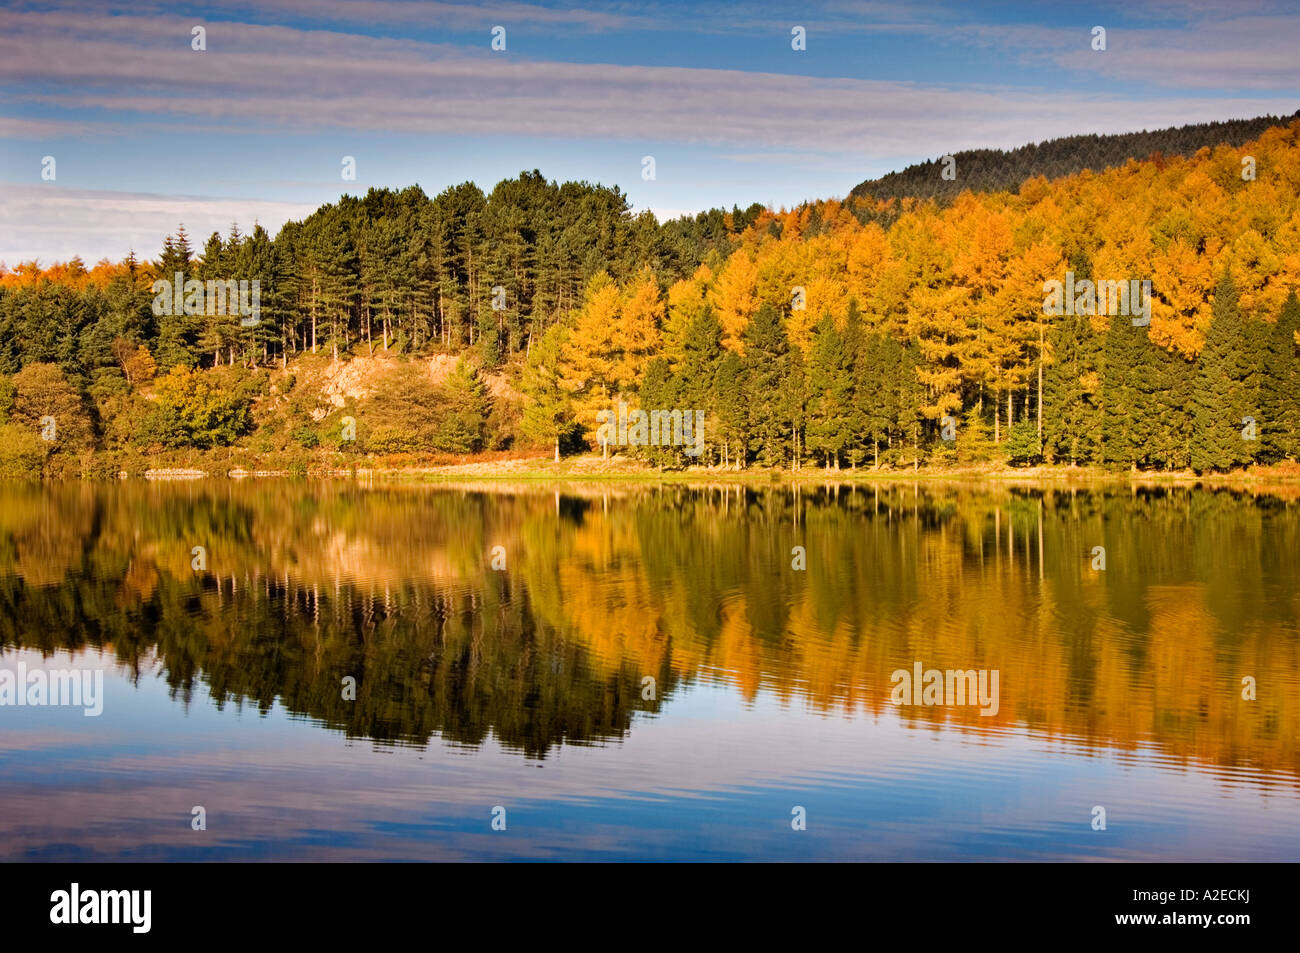 Autumn Reflections in Trentabank Reservoir, Macclesfield Forest, Cheshire, England, UK - Stock Image